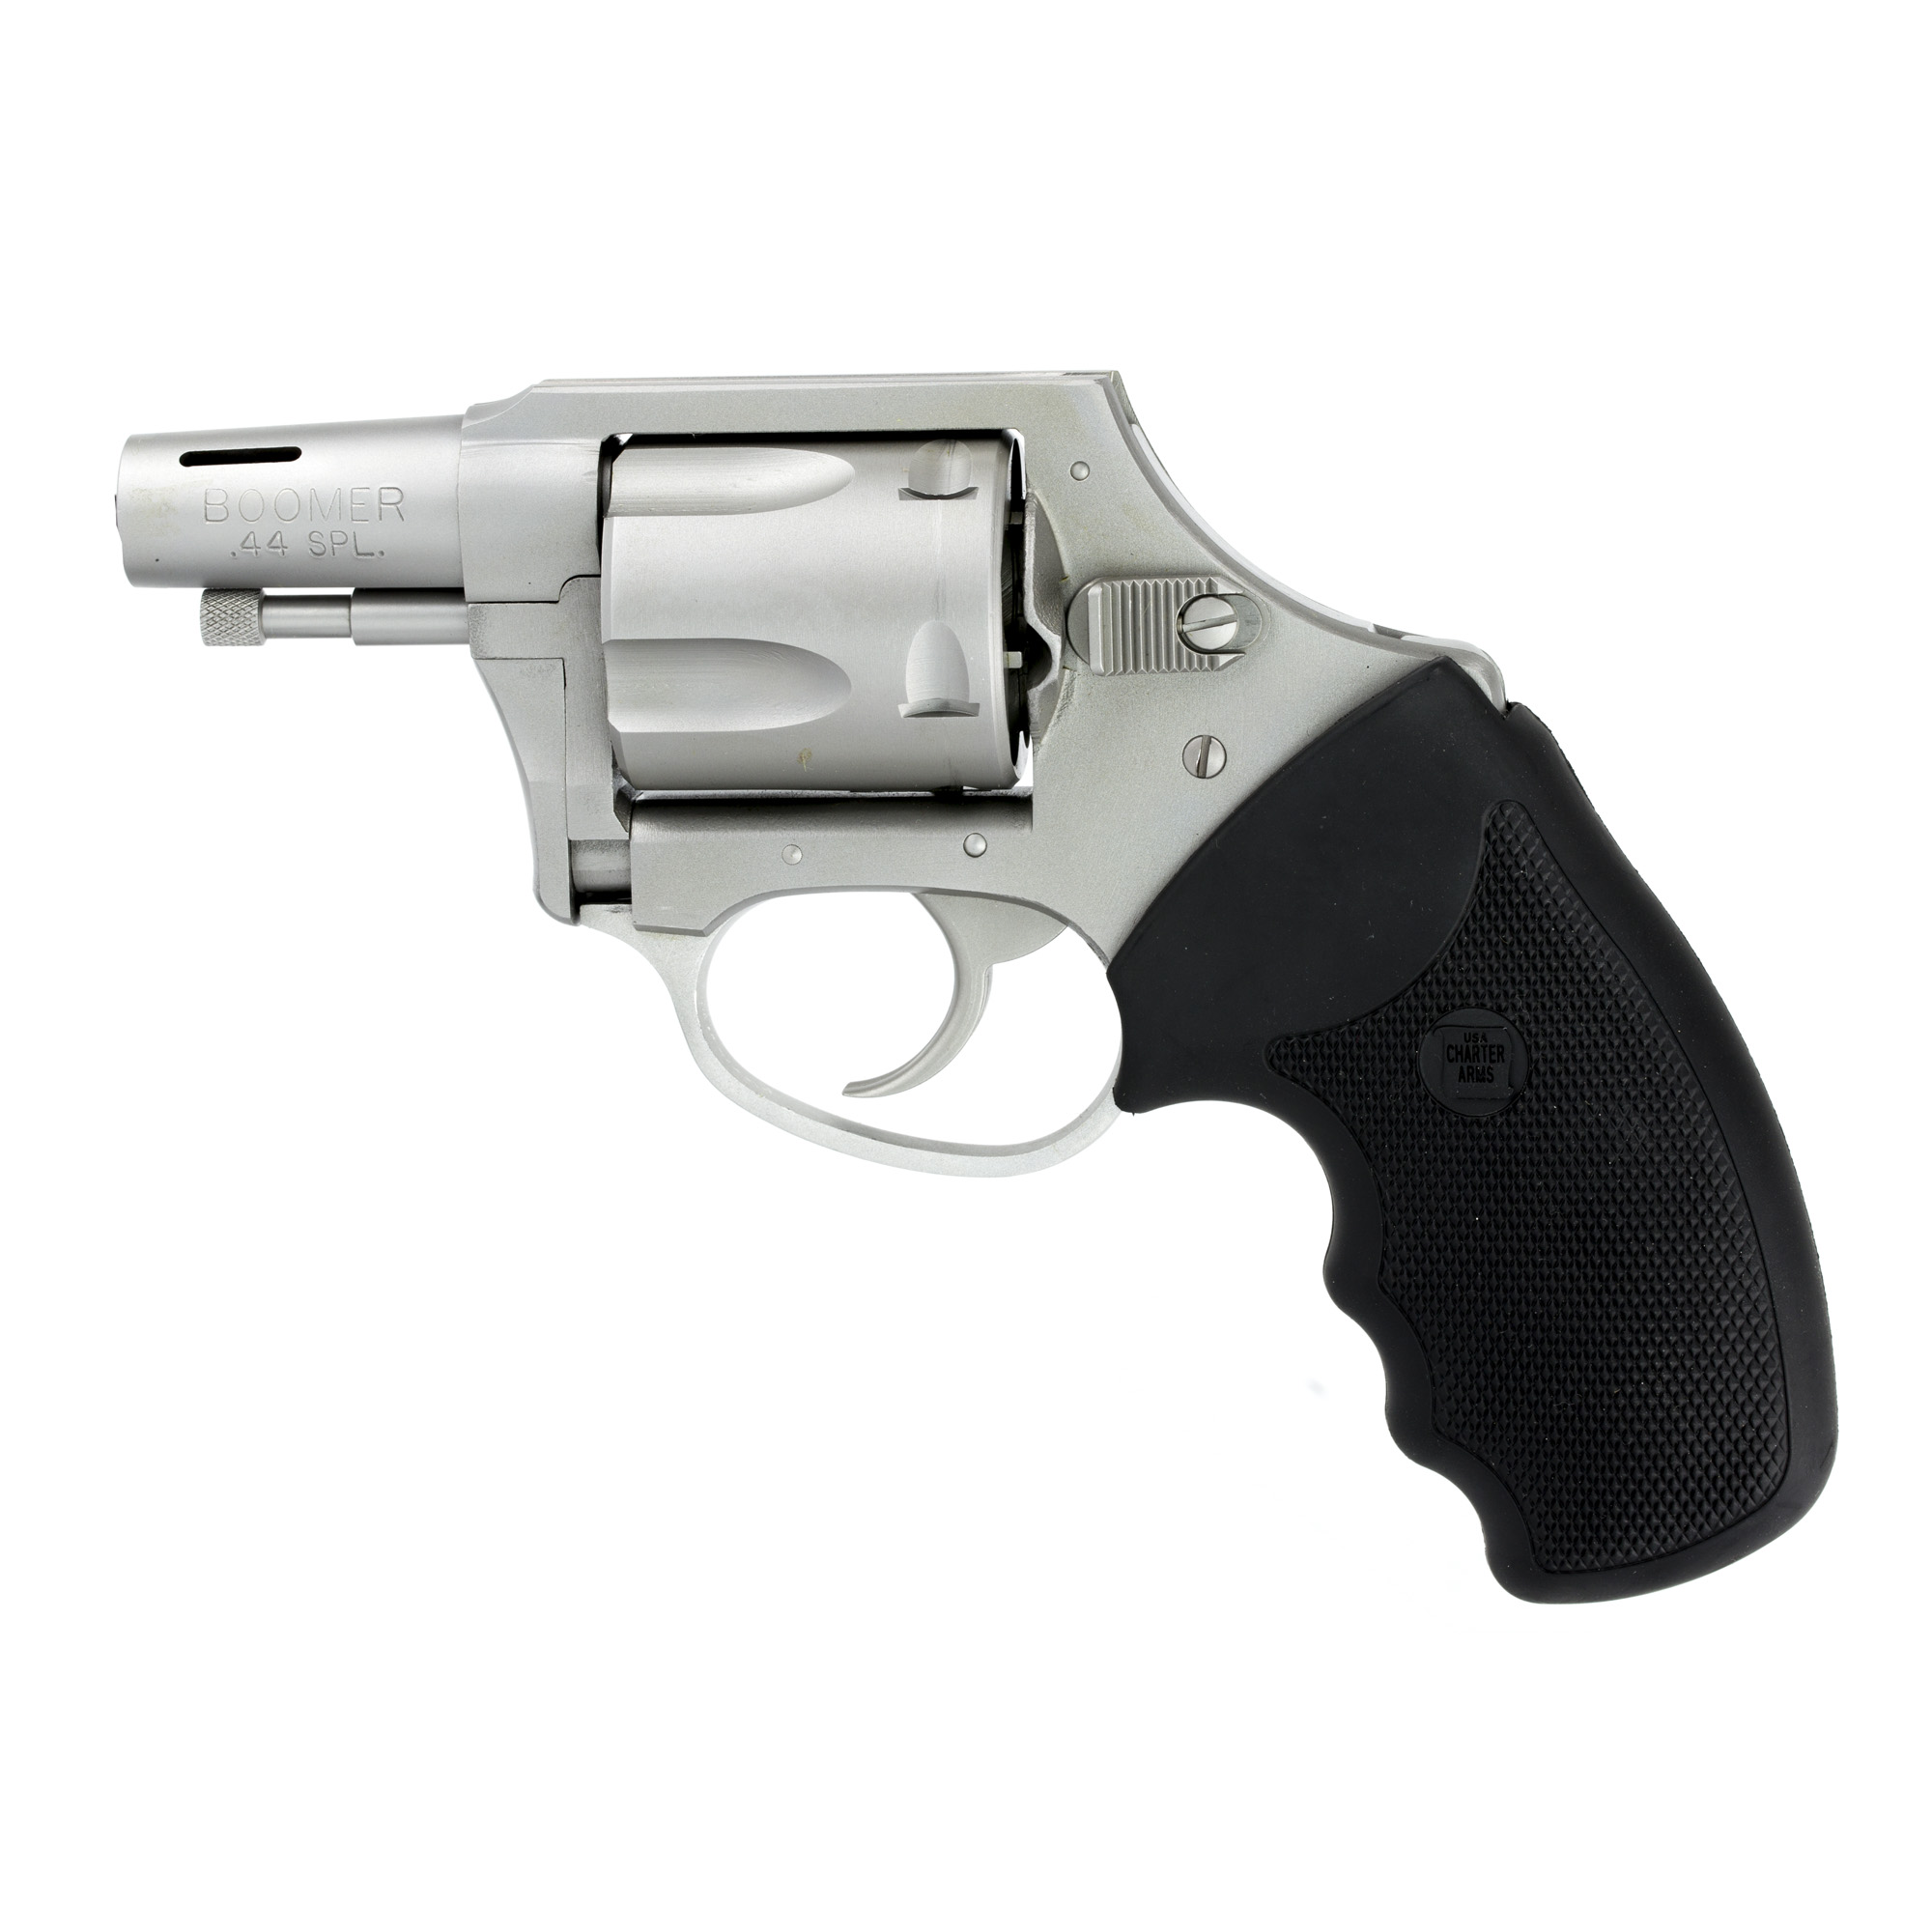 """Charter Arms Boomer 44spl 2"""" 5rd Sts"""